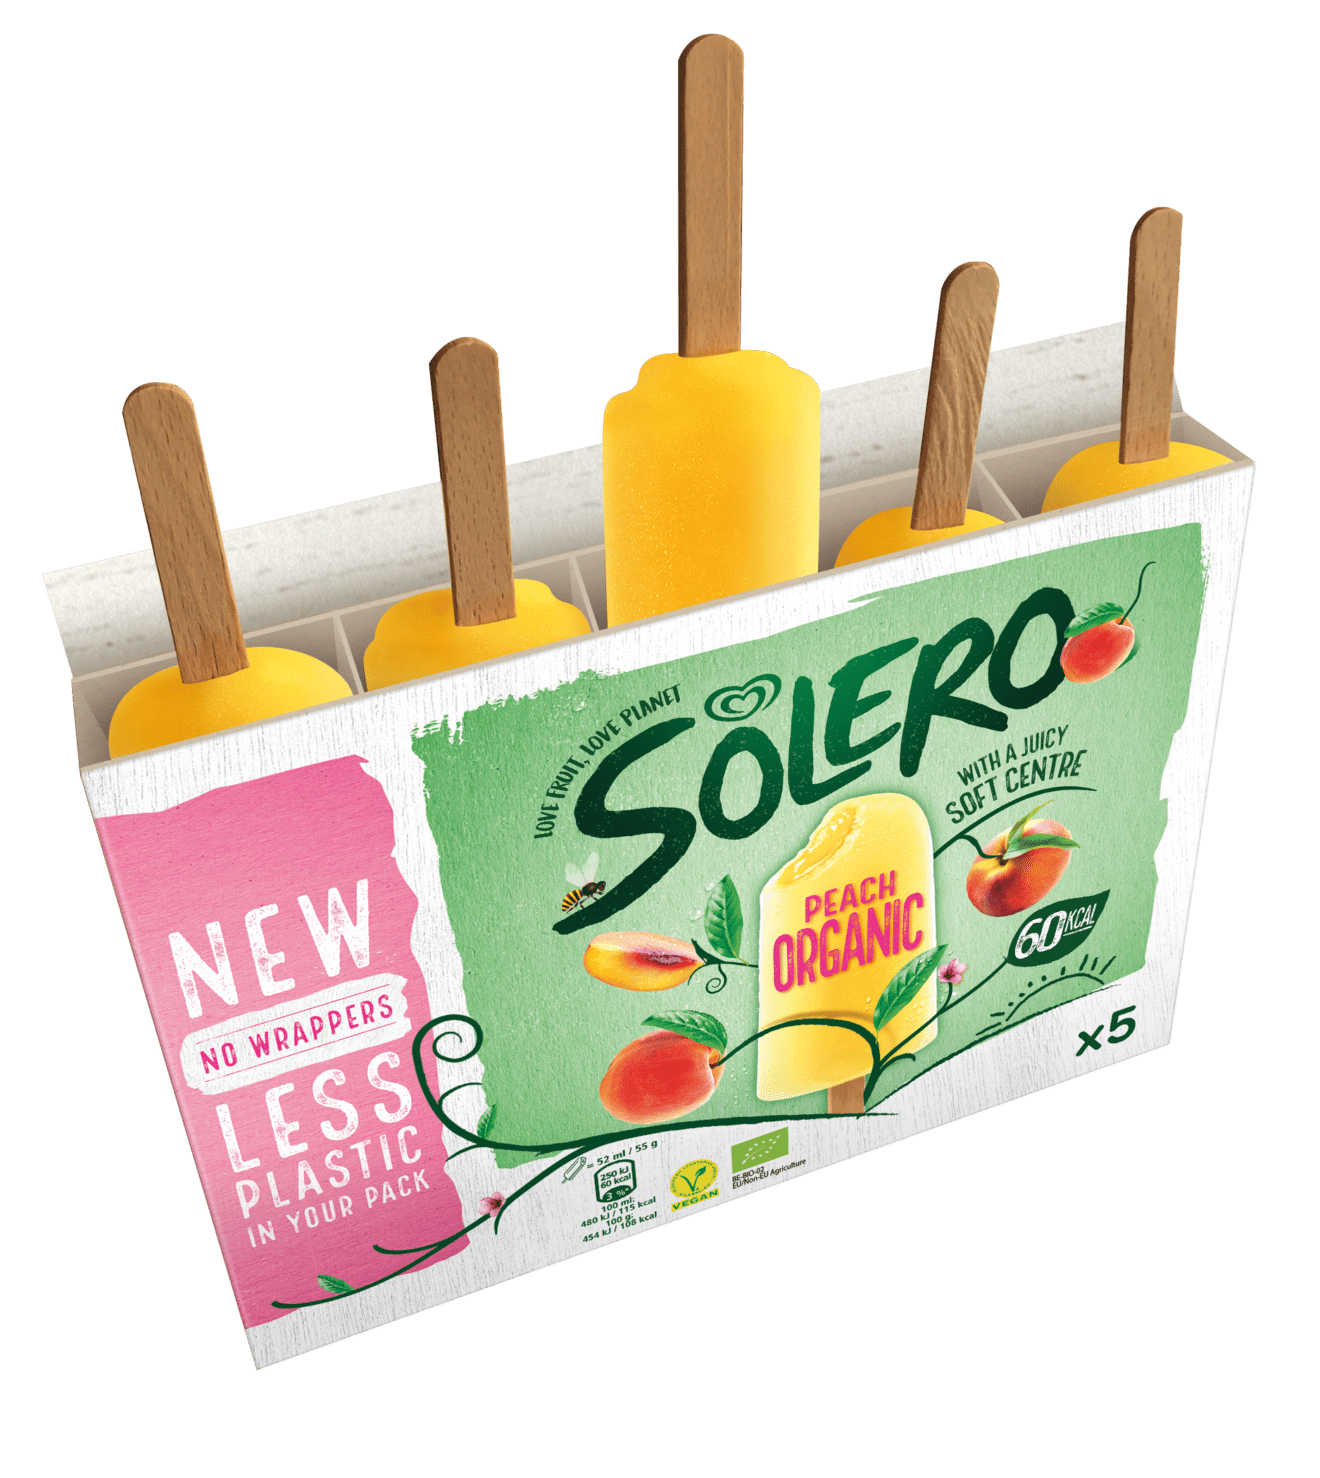 Vegan Solero Trials First Ever Multipack Without Plastic Wrappers